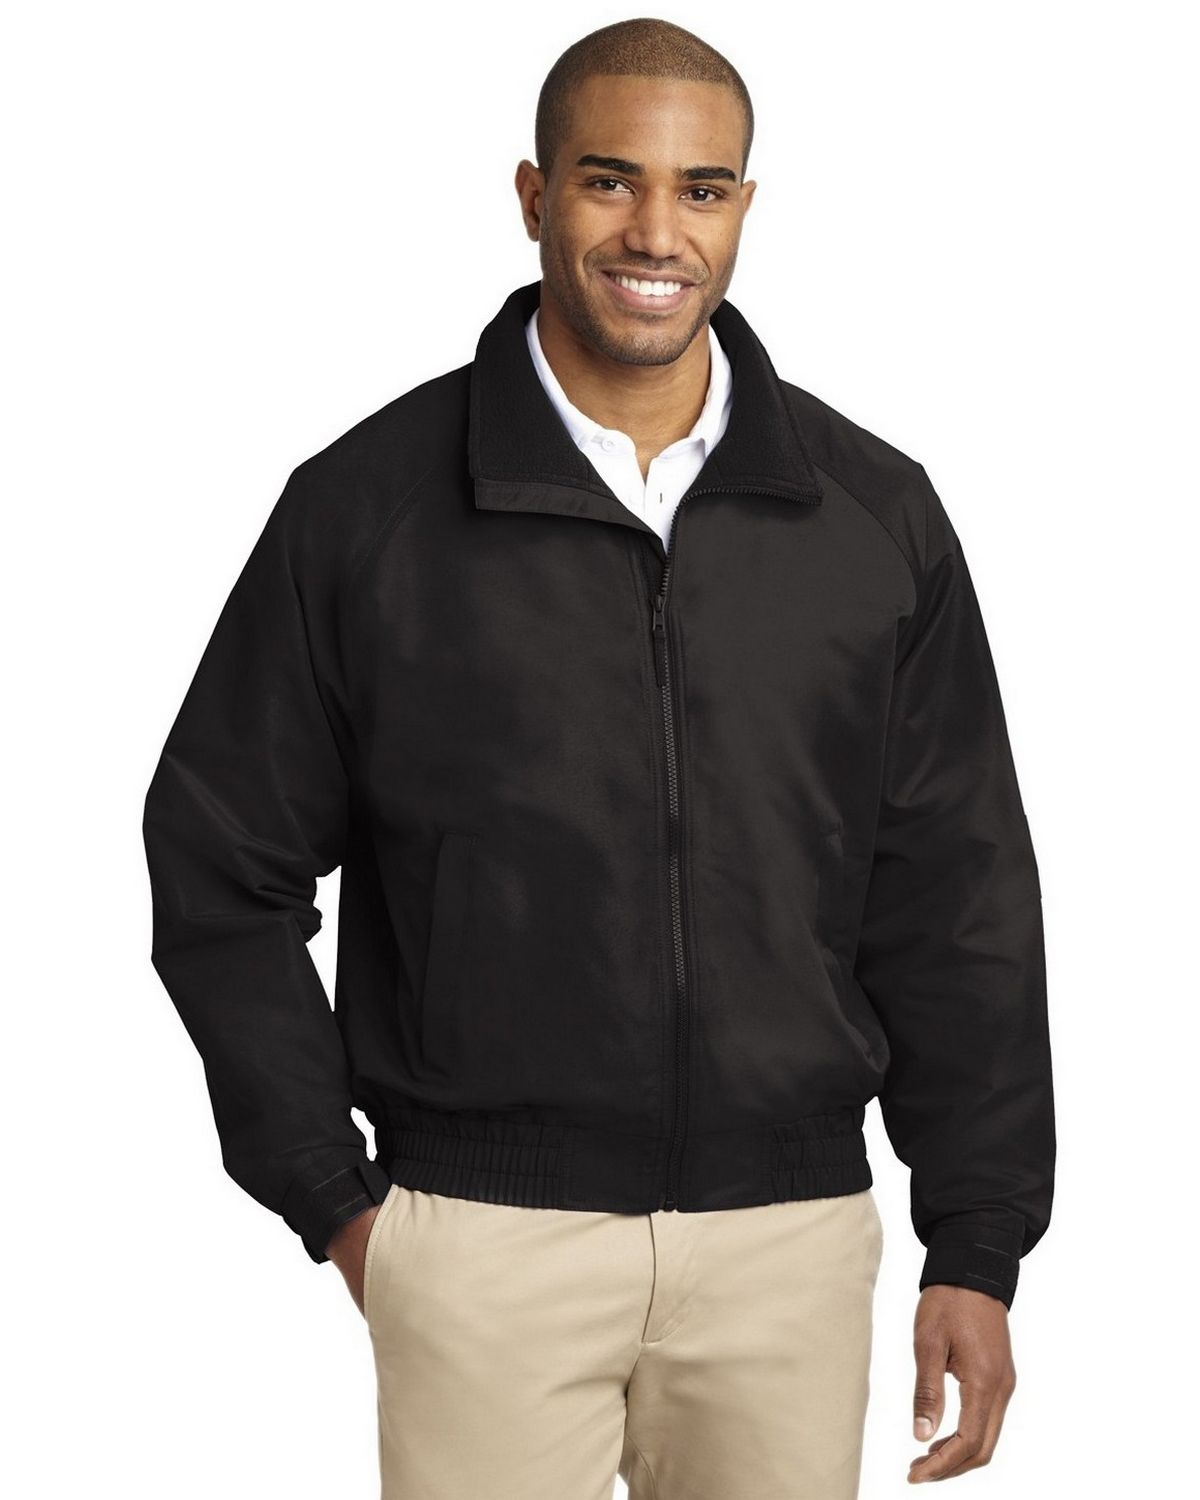 Port Authority J329 Lightweight Charger Jacket - True Black - XL J329